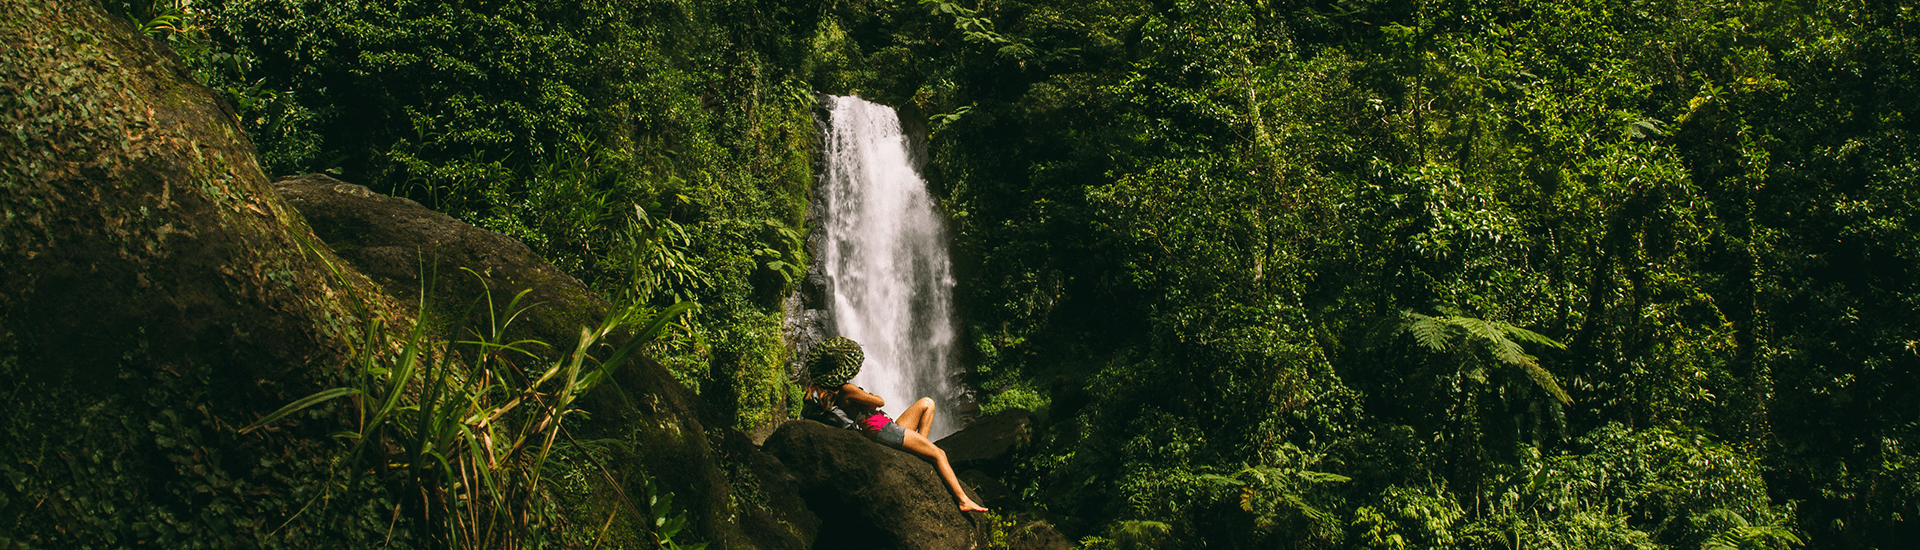 Stretch your legs on Dominica's Waitukubuli National Trail. It's an awe-inspiring path that rambles 114 miles across the island, taking in waterfalls, rainforests, mountain peaks, hidden gorges and deserted beaches.